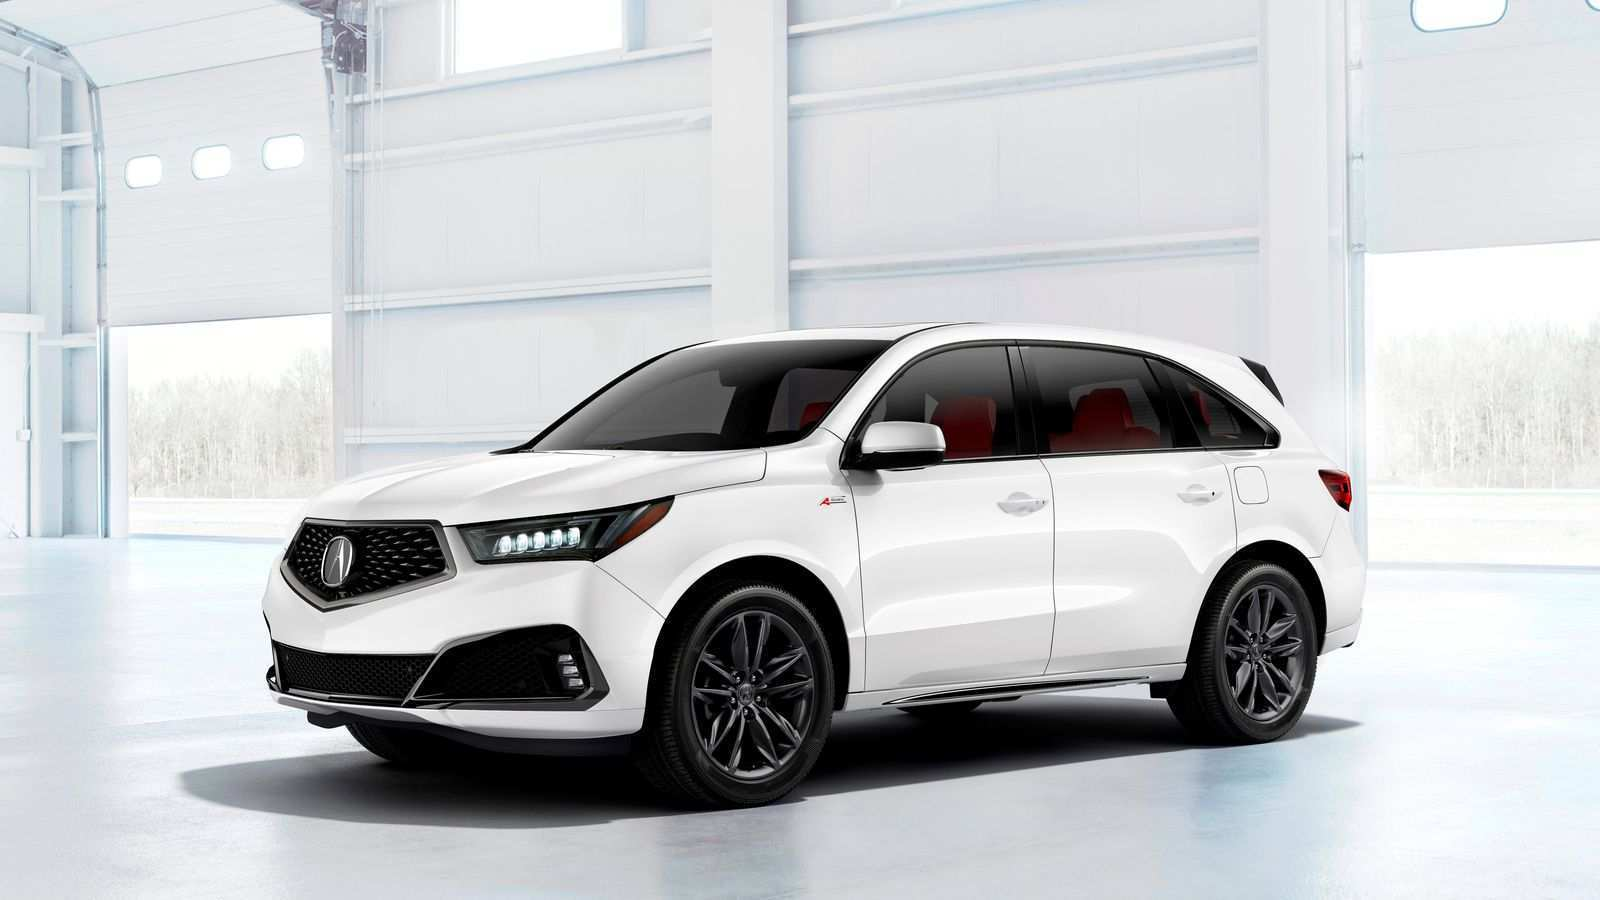 69 All New 2019 Acura 2019 Price and Review by 2019 Acura 2019